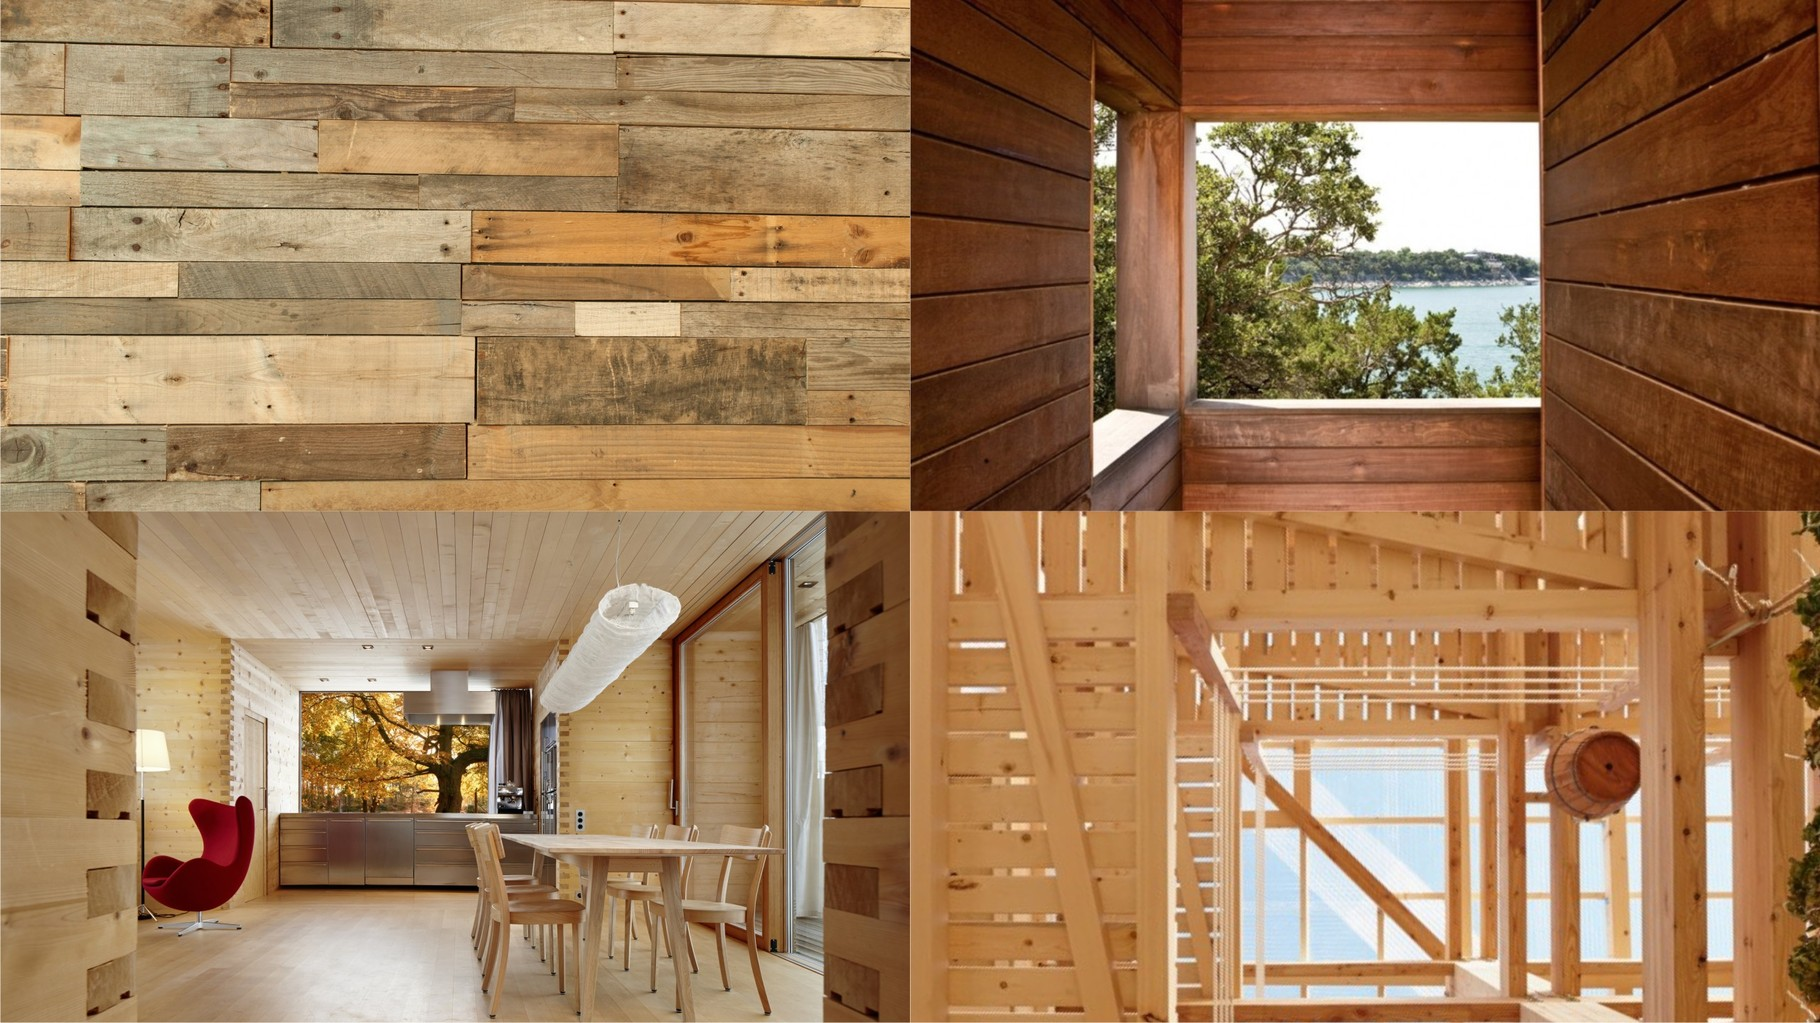 References OAS1S™: Rustic cabin-like interiors of recycled wood, with high staircase skylights.